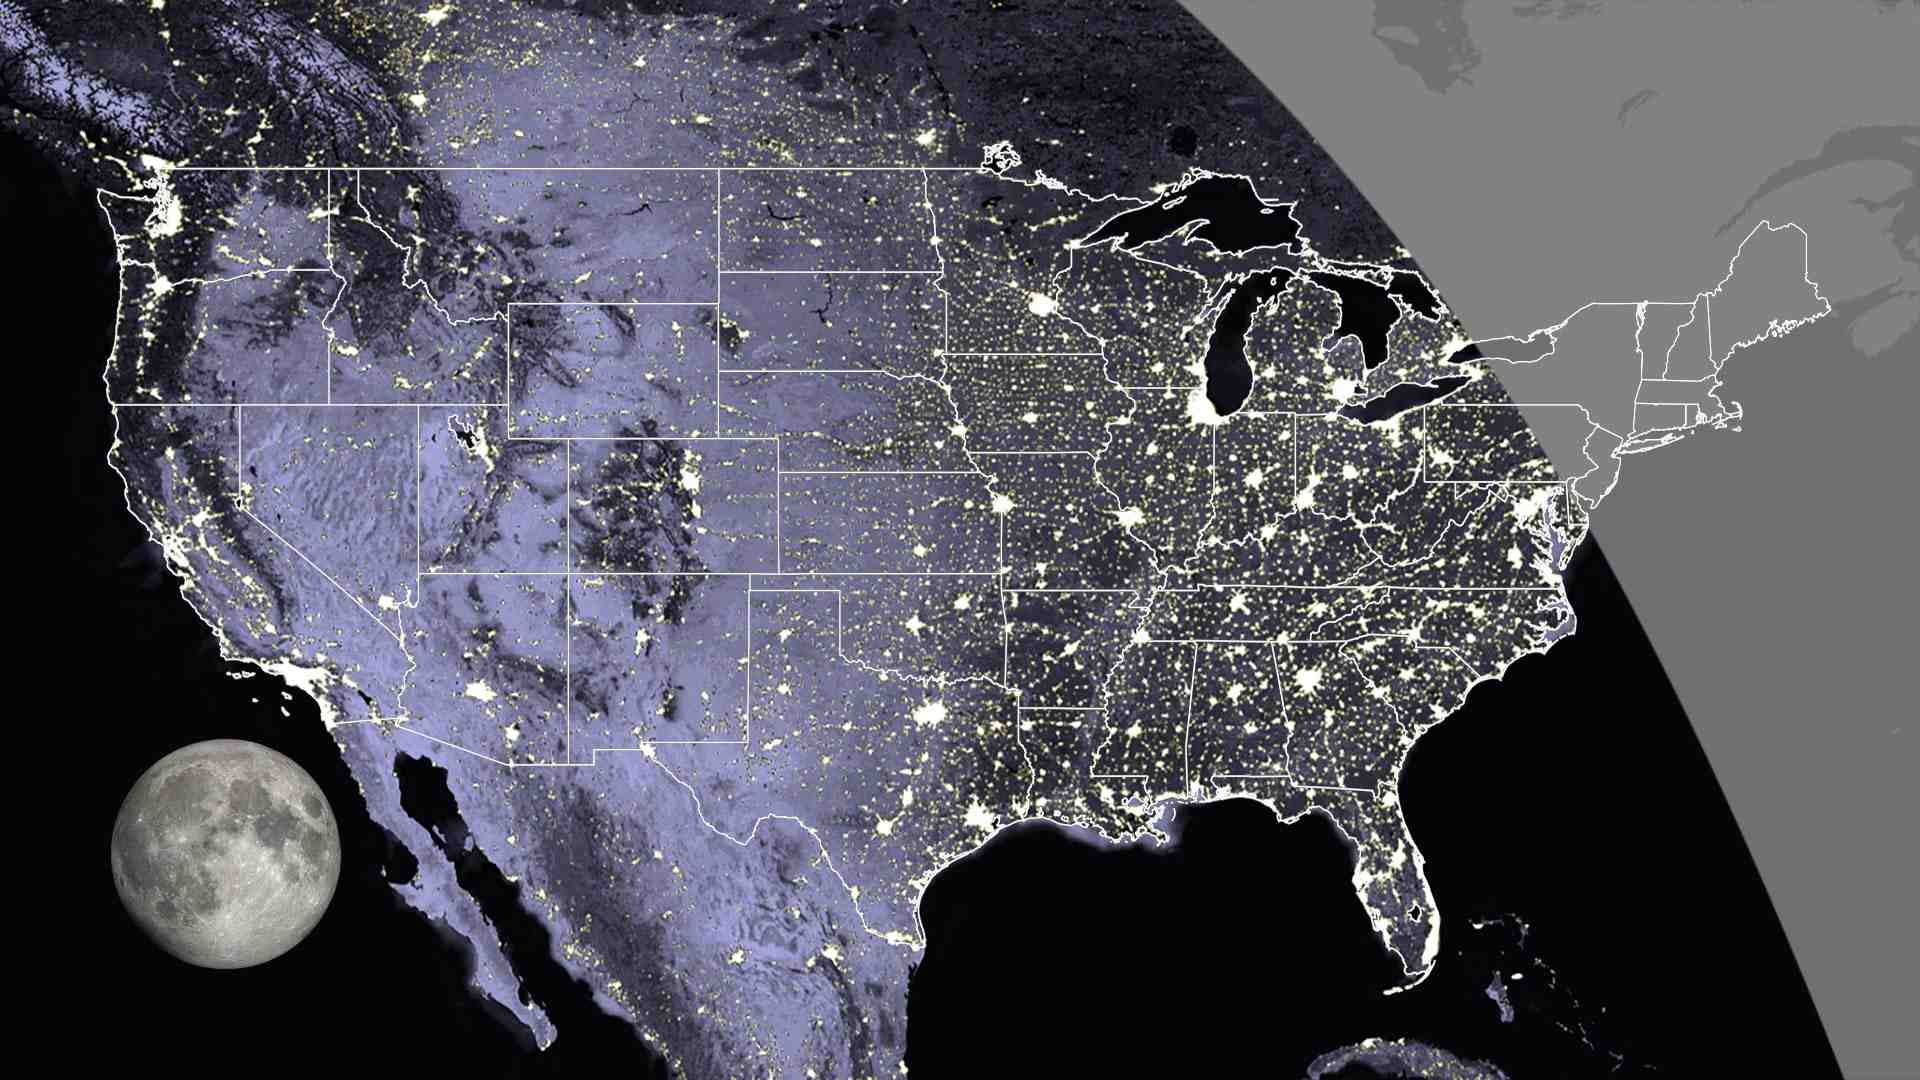 Where can I see the solar eclipse in 2021?